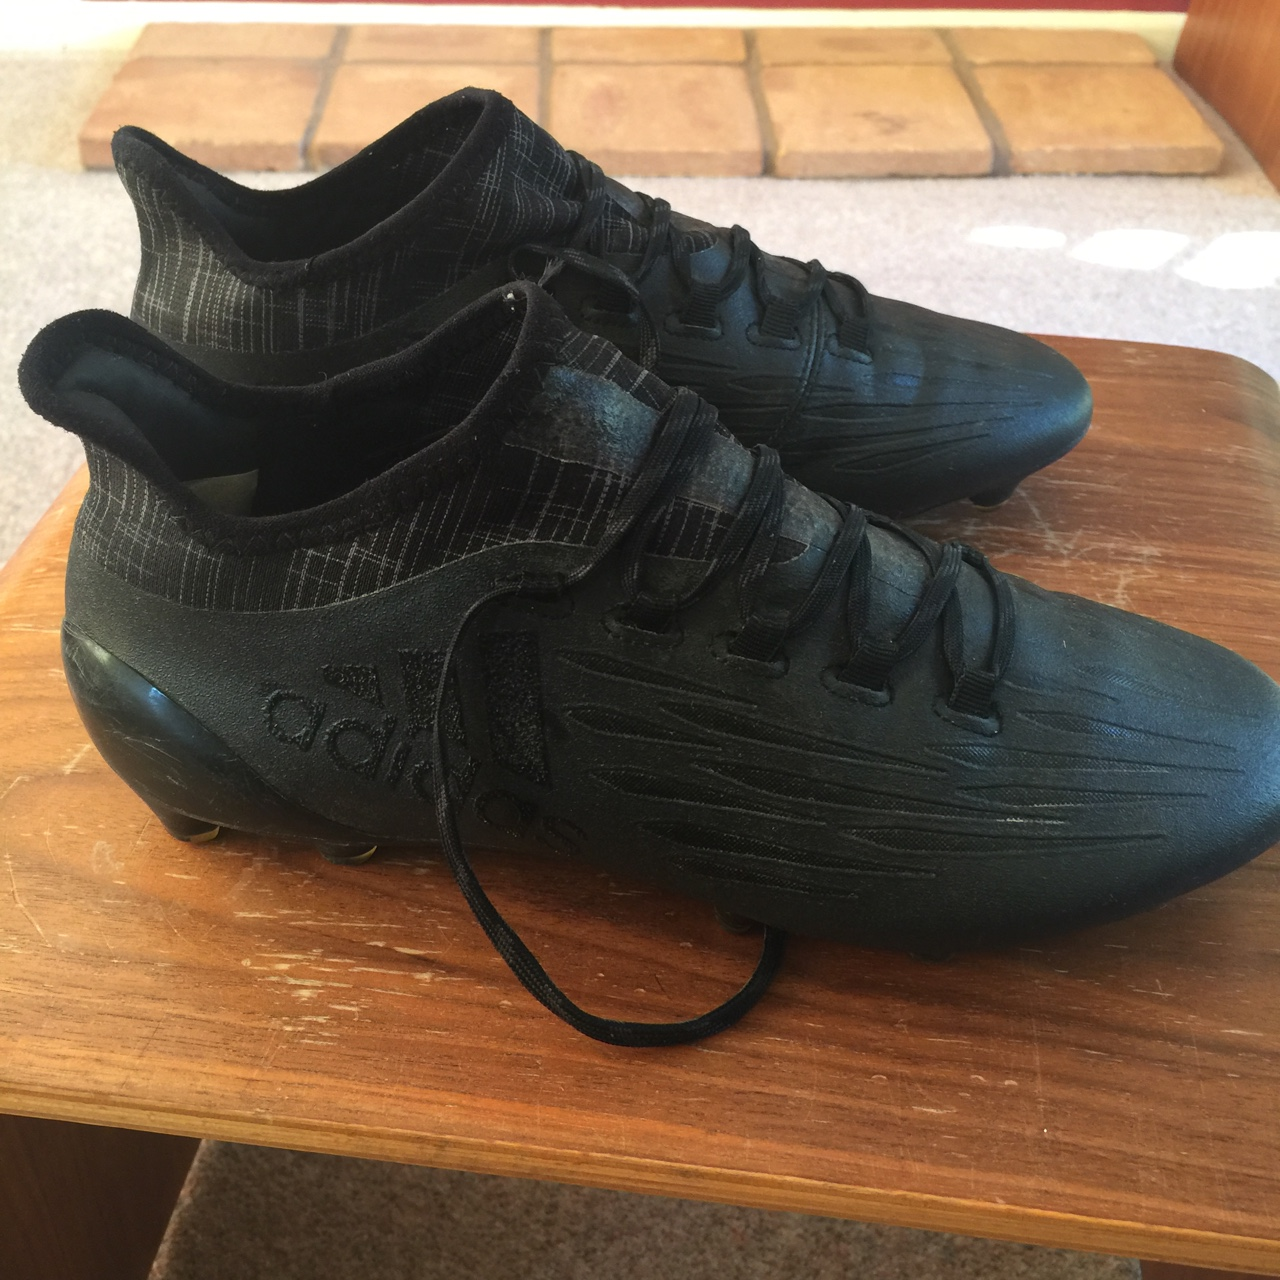 Cien años Maldición En honor  Black out adidas x16.2 football boots. Firm ground... - Depop